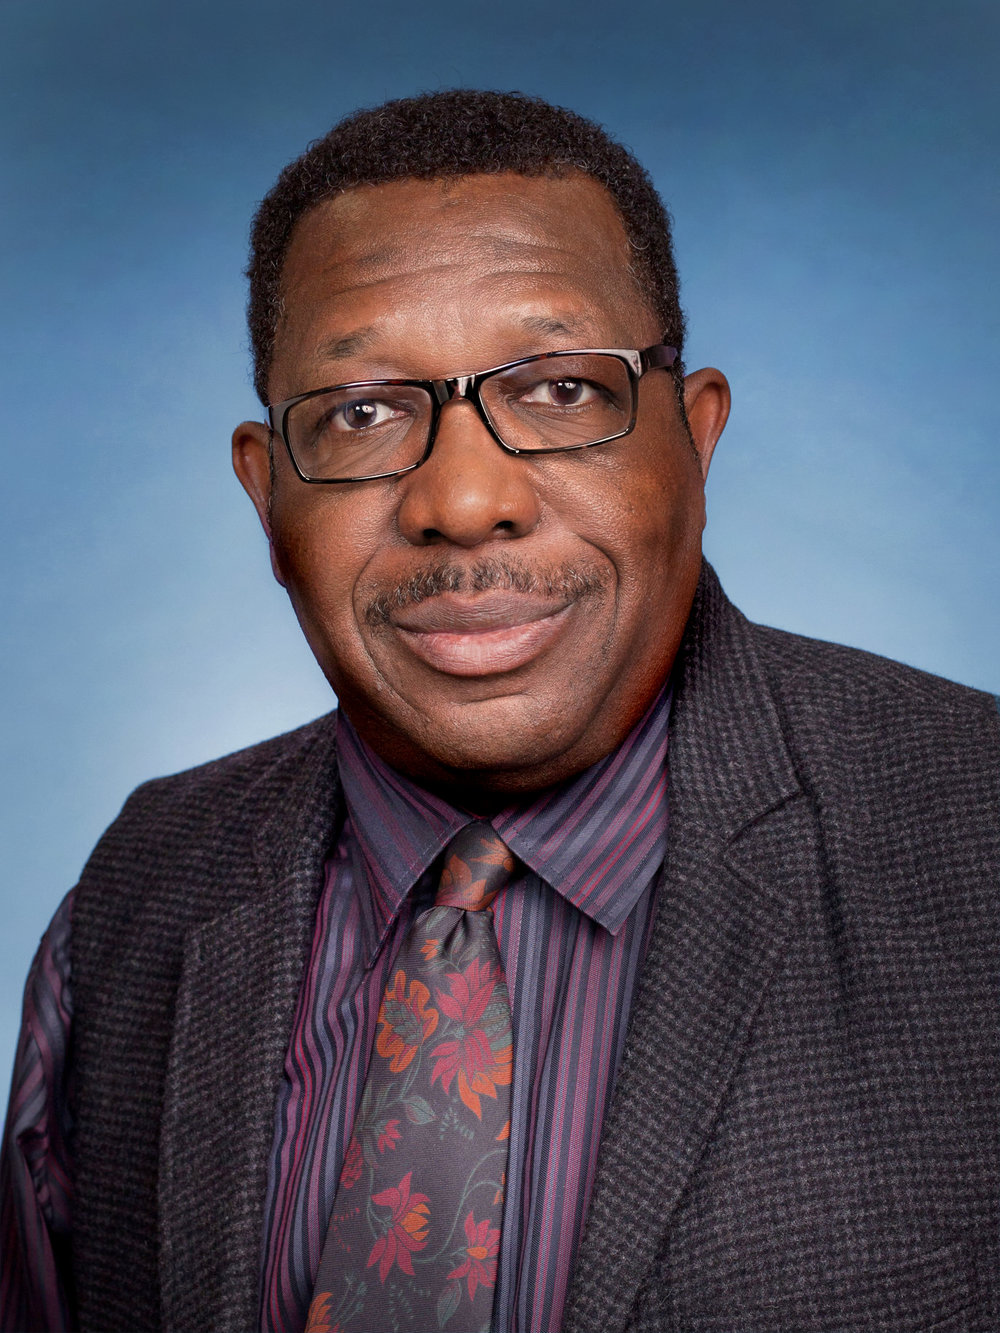 Willie Ealey - Superintendent